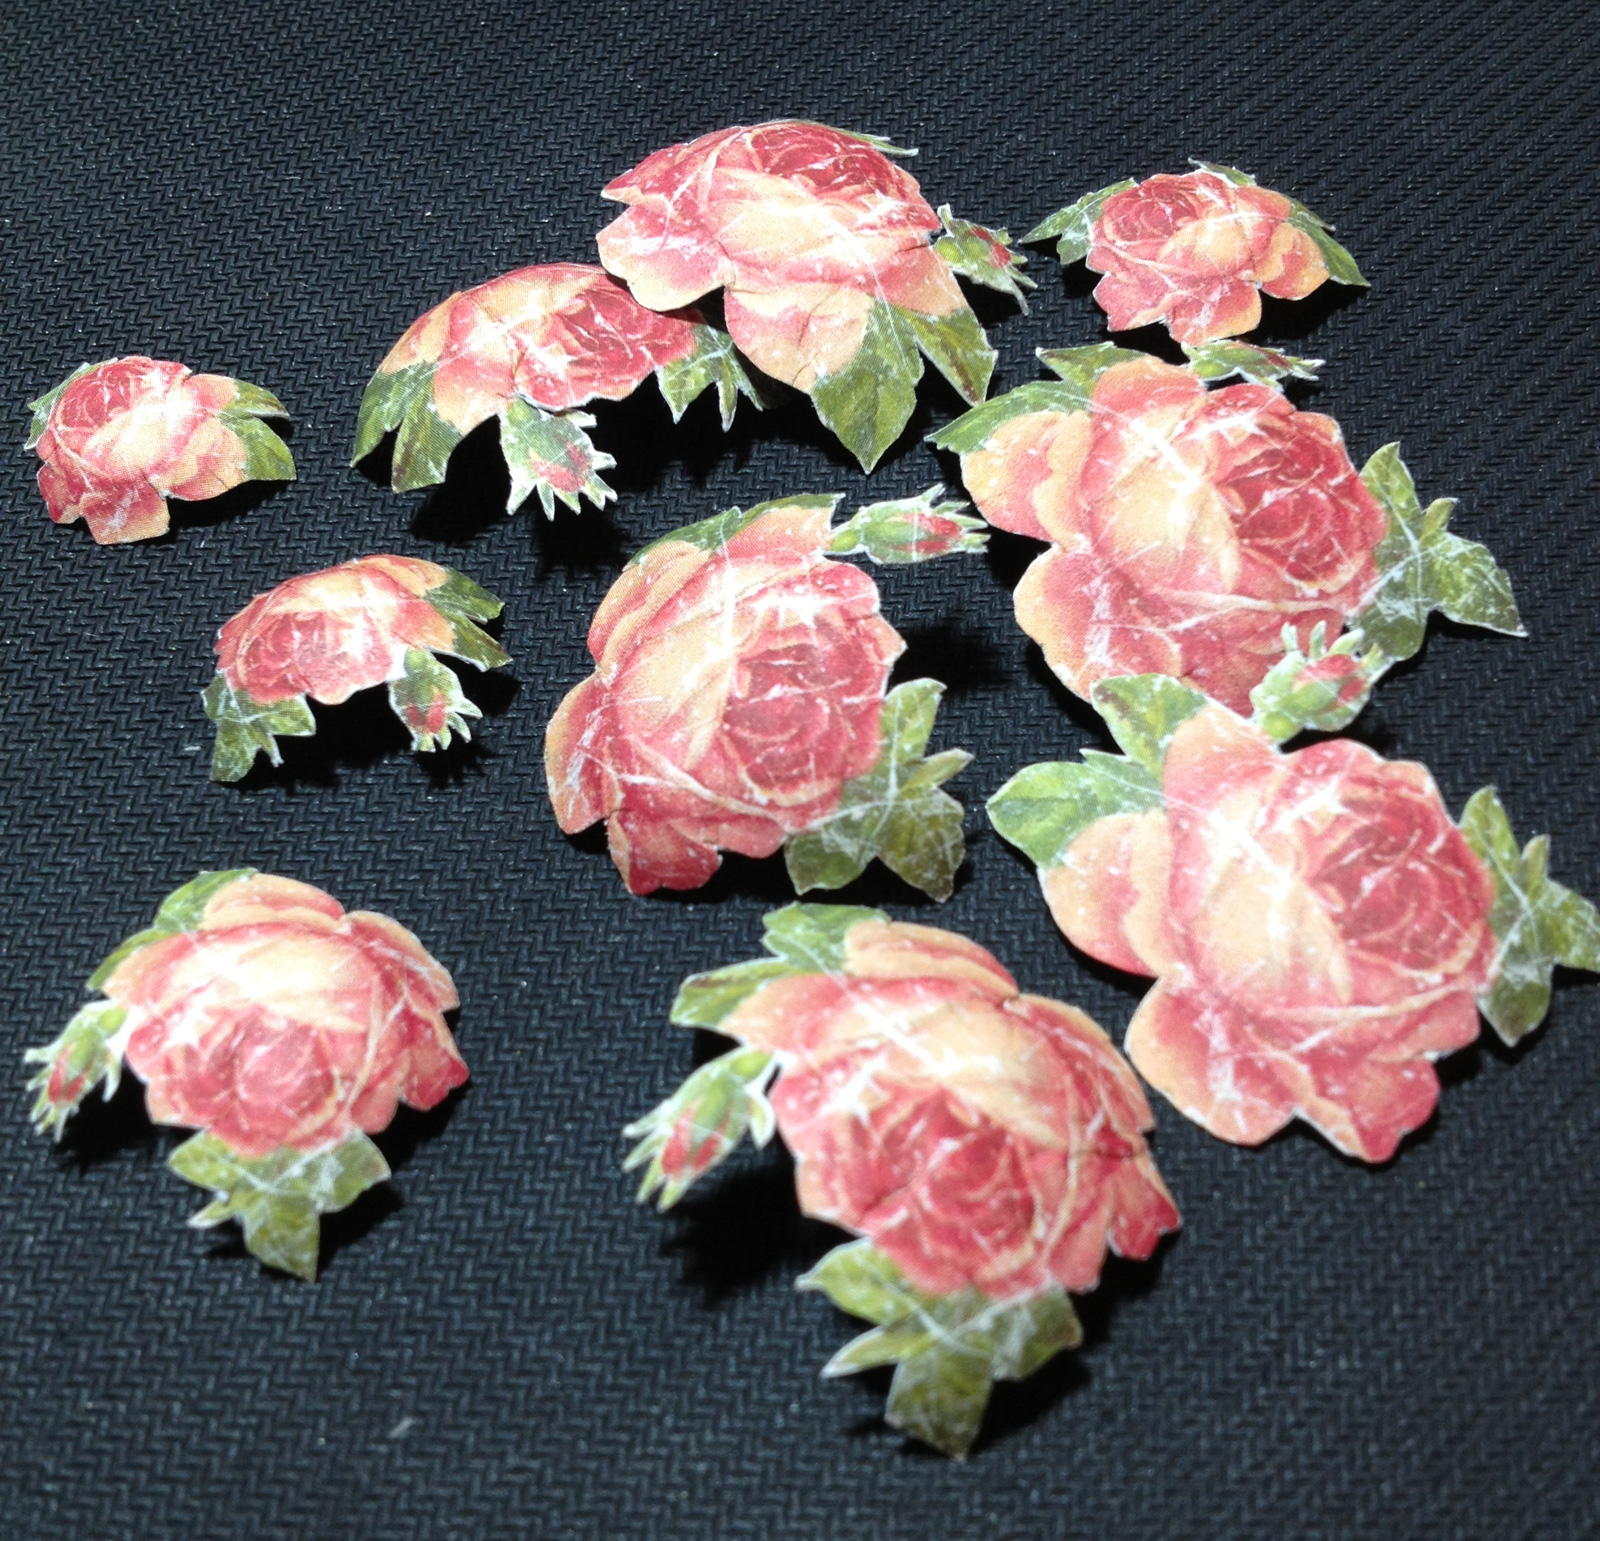 Paper crafting; fussy cut roses. Paper by 75 Studio